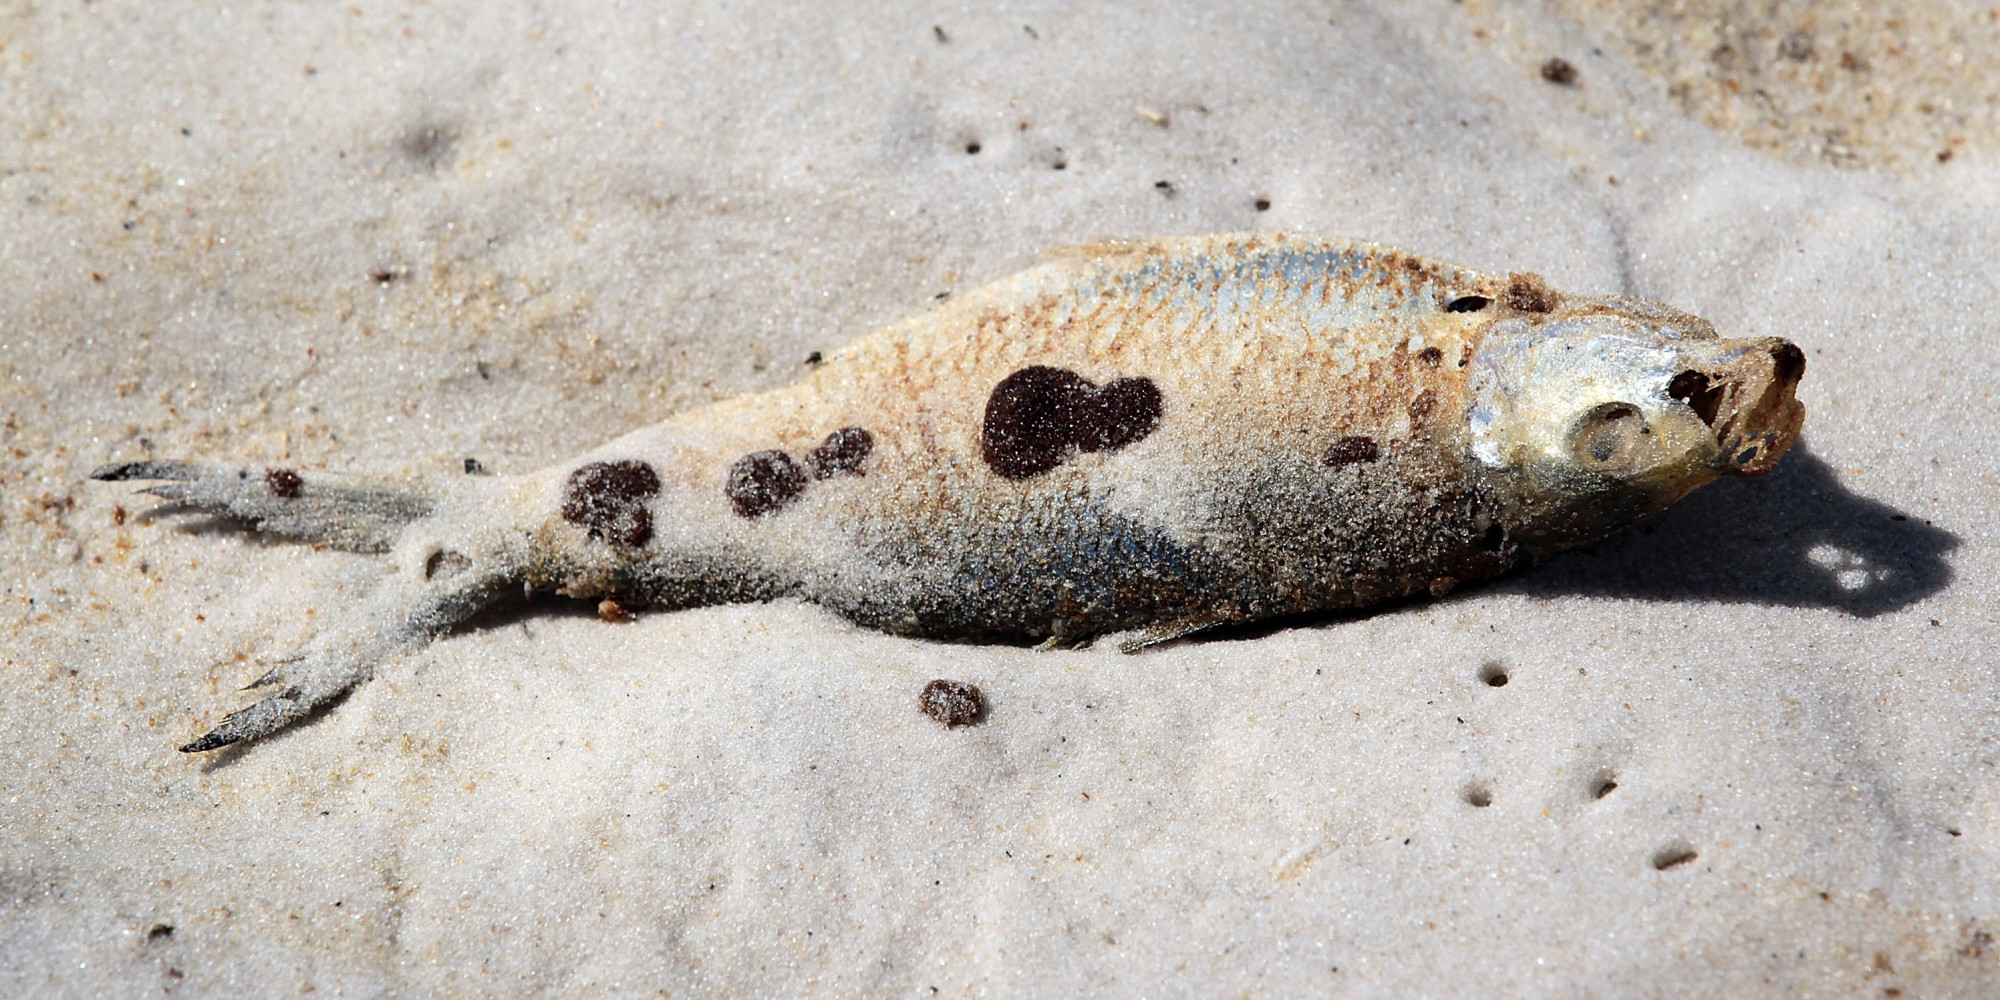 BP Oil Spill Caused Sickness In Fish, Researchers Find | HuffPost